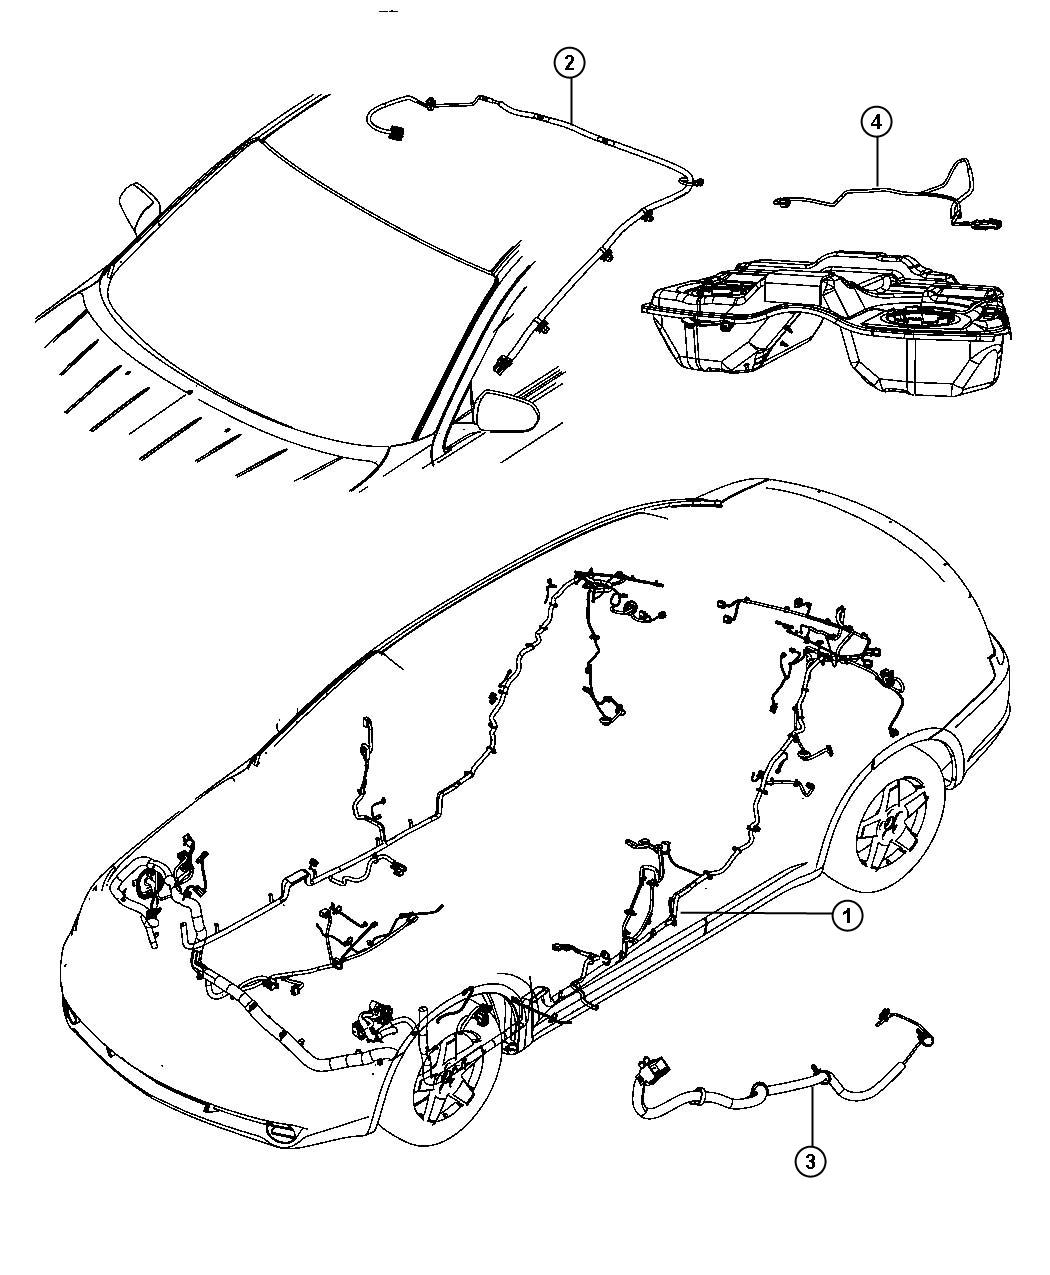 Chrysler 200 Wiring Unified Body Jln Or Jlb